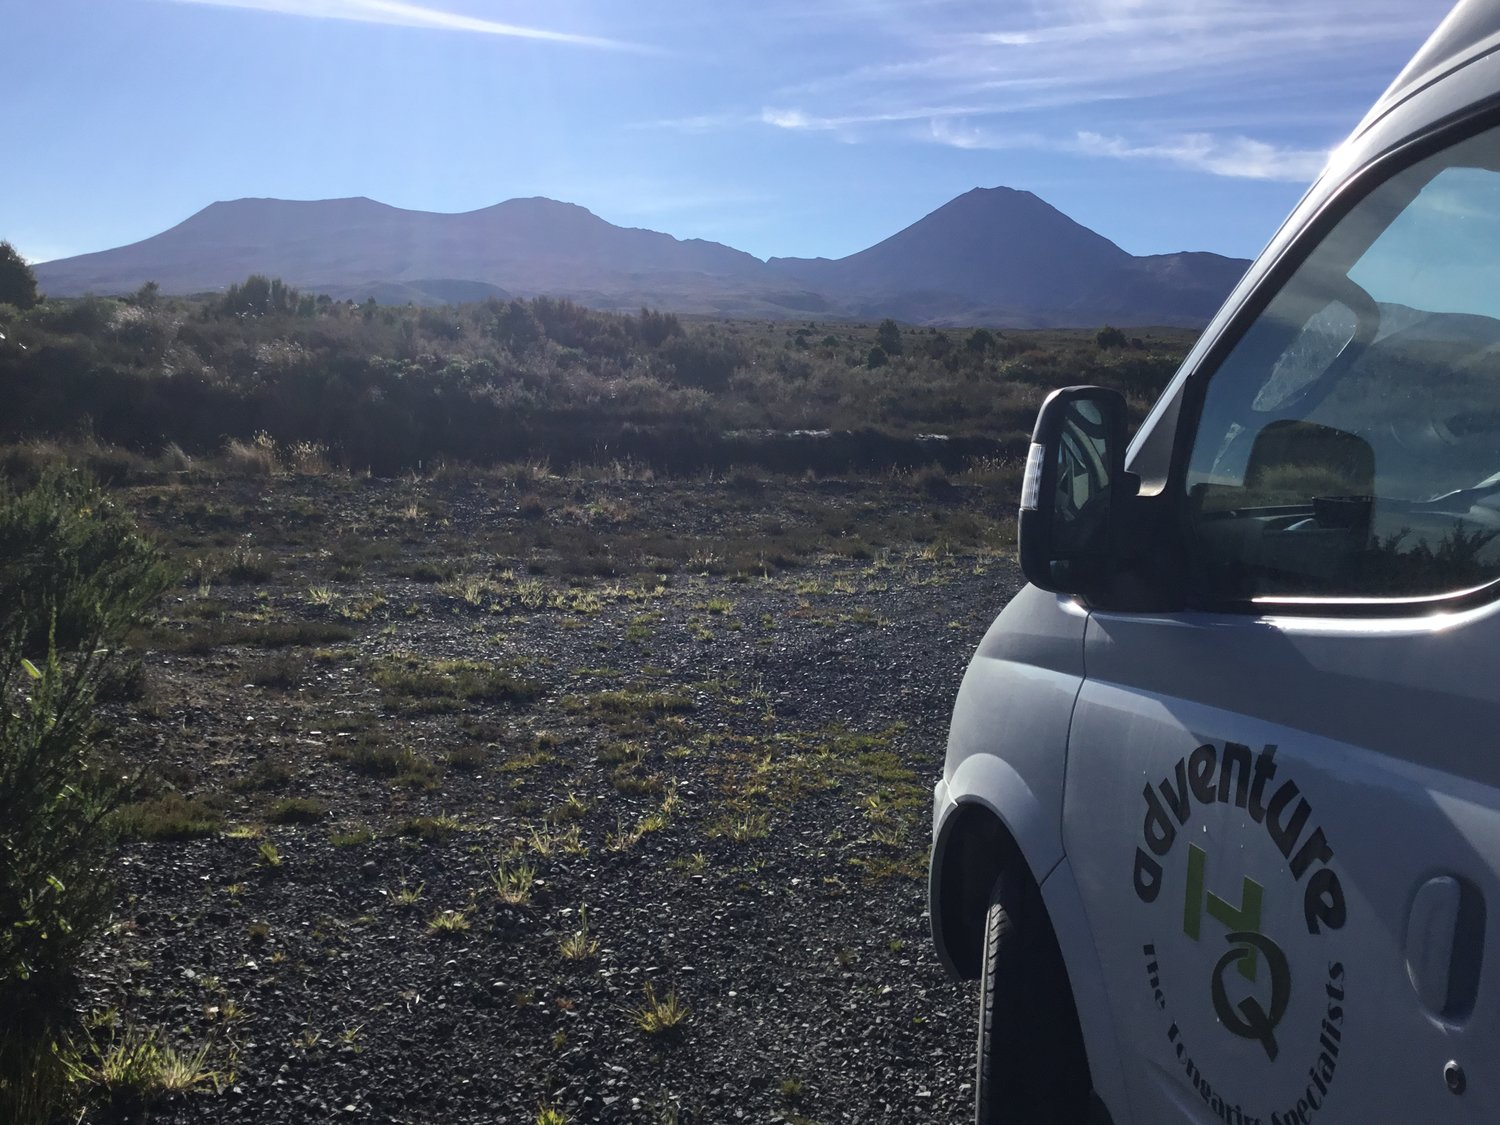 Tongariro+scene+with+van.jpeg